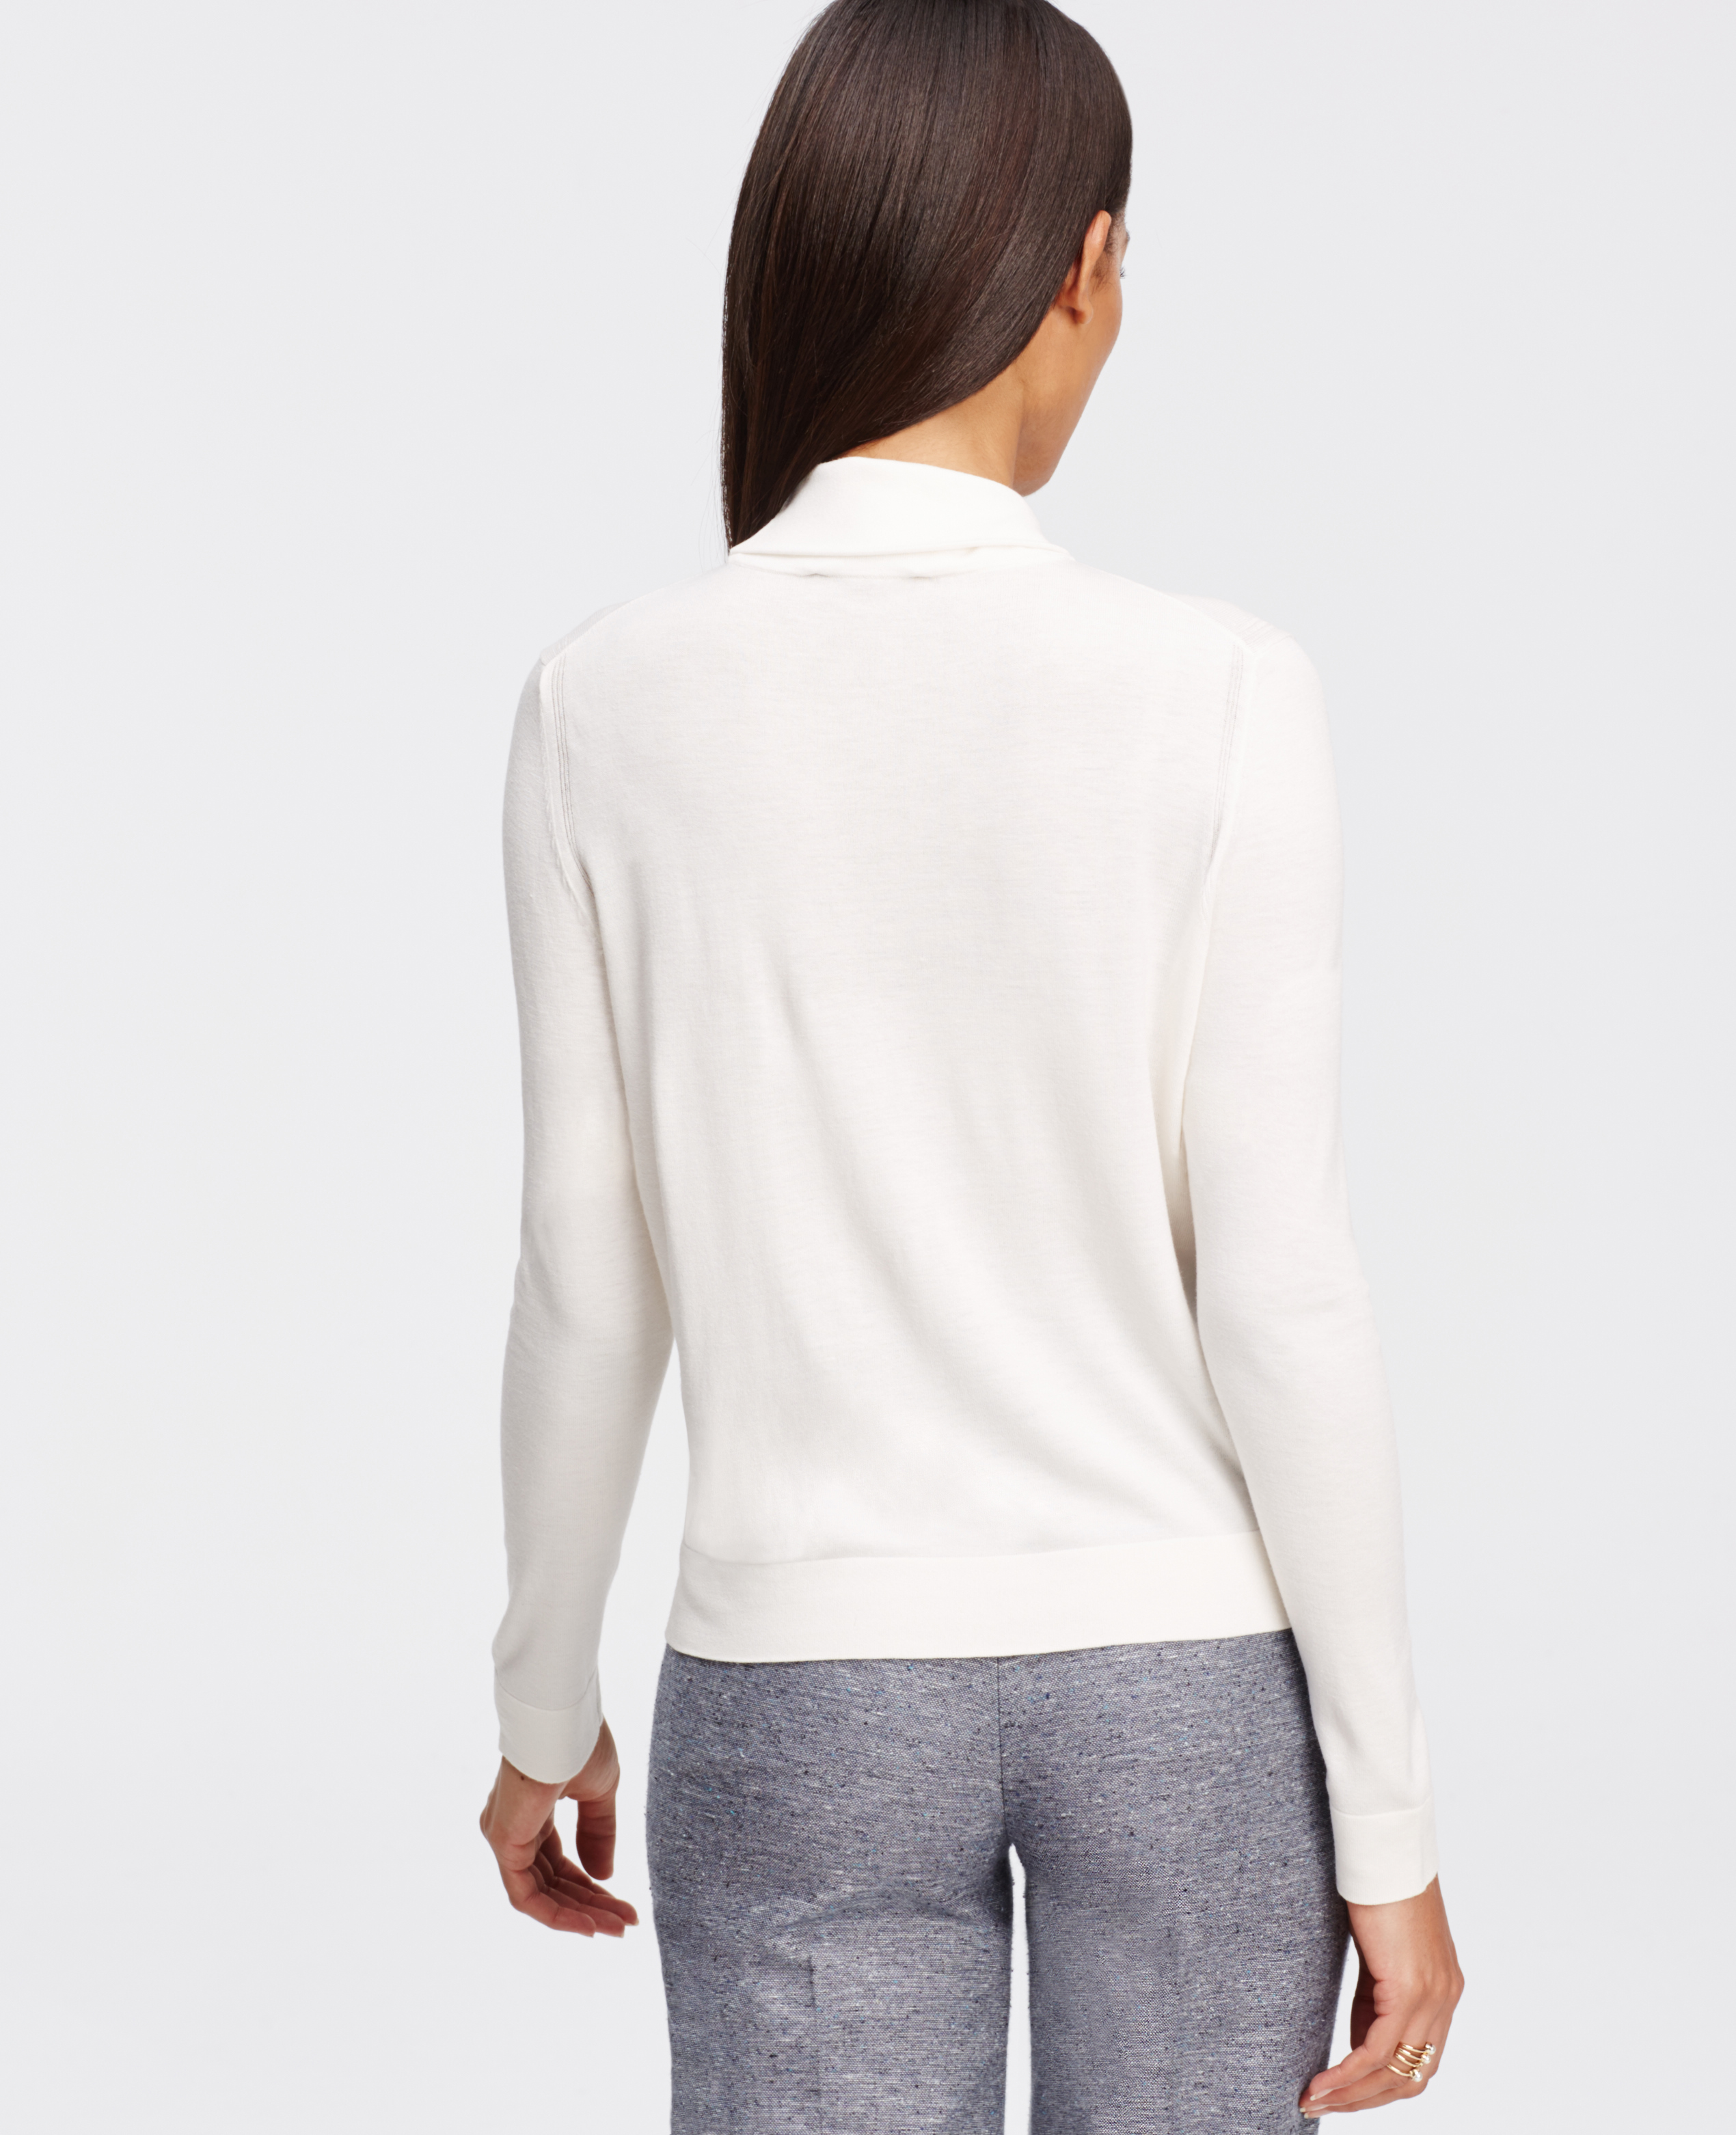 Ann taylor Cropped Turtleneck Sweater in White | Lyst